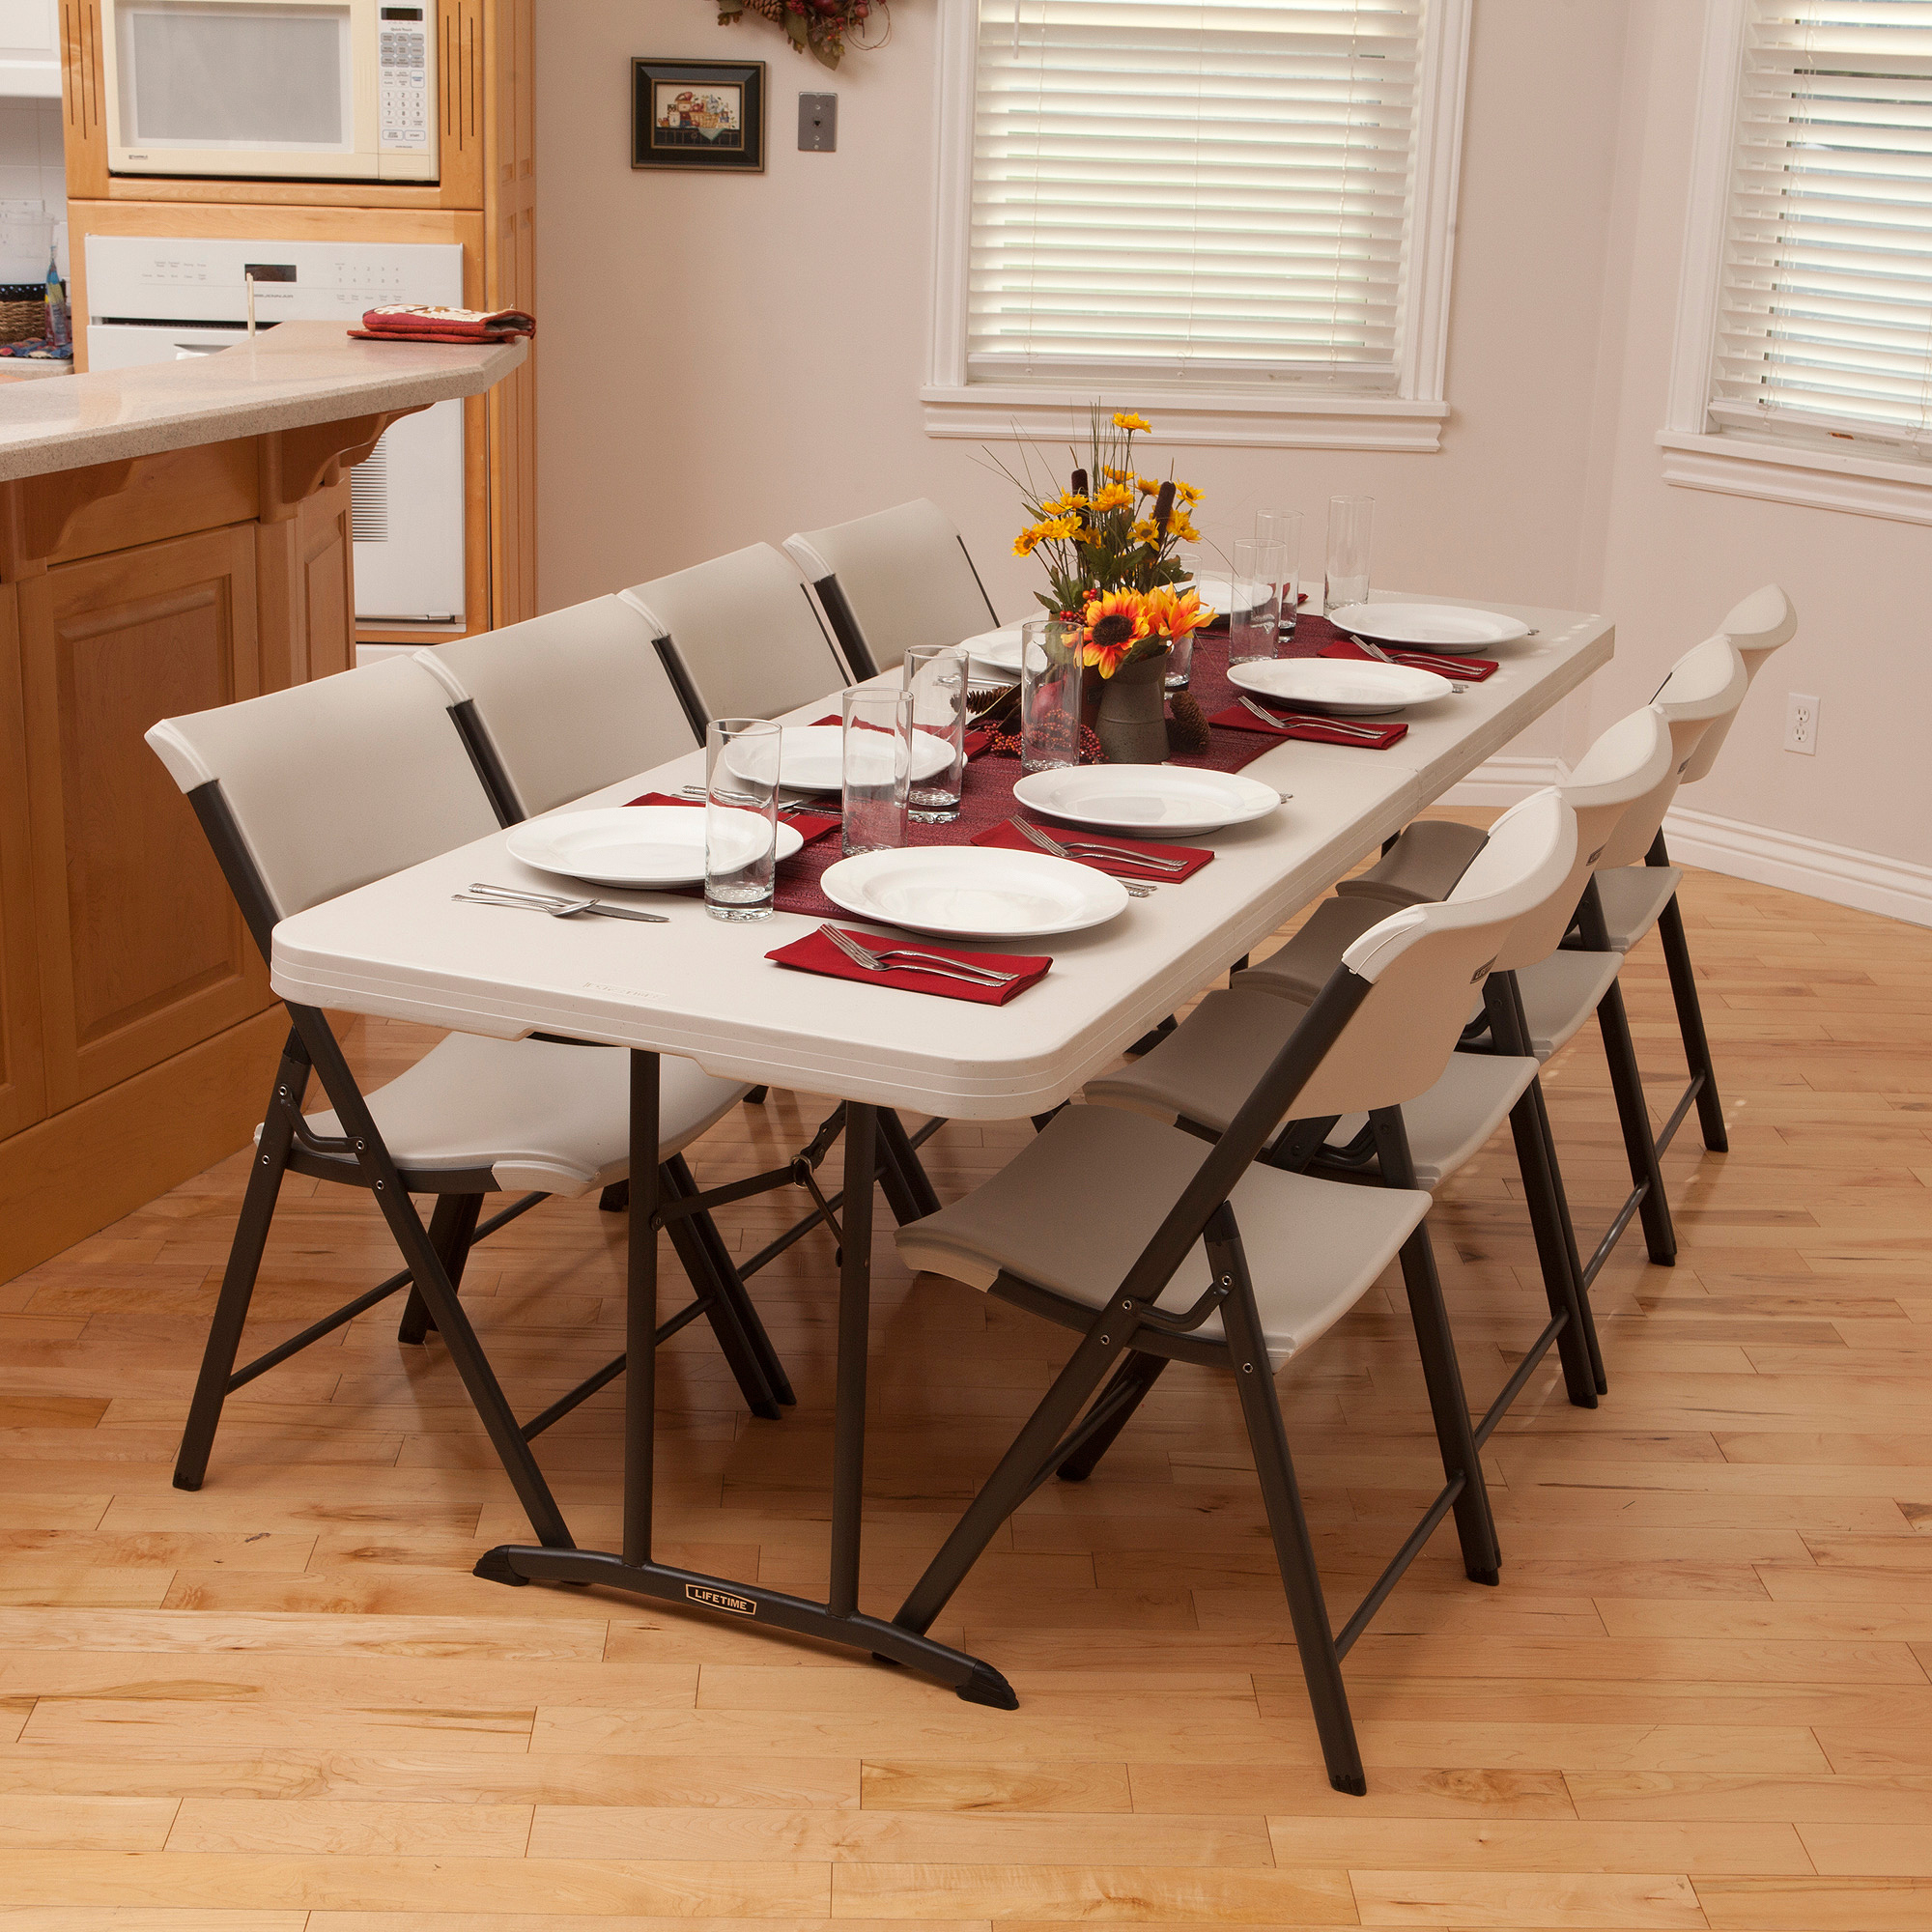 lifetime chairs and tables cute chair covers 8 fold in half table almond 80175 walmart com